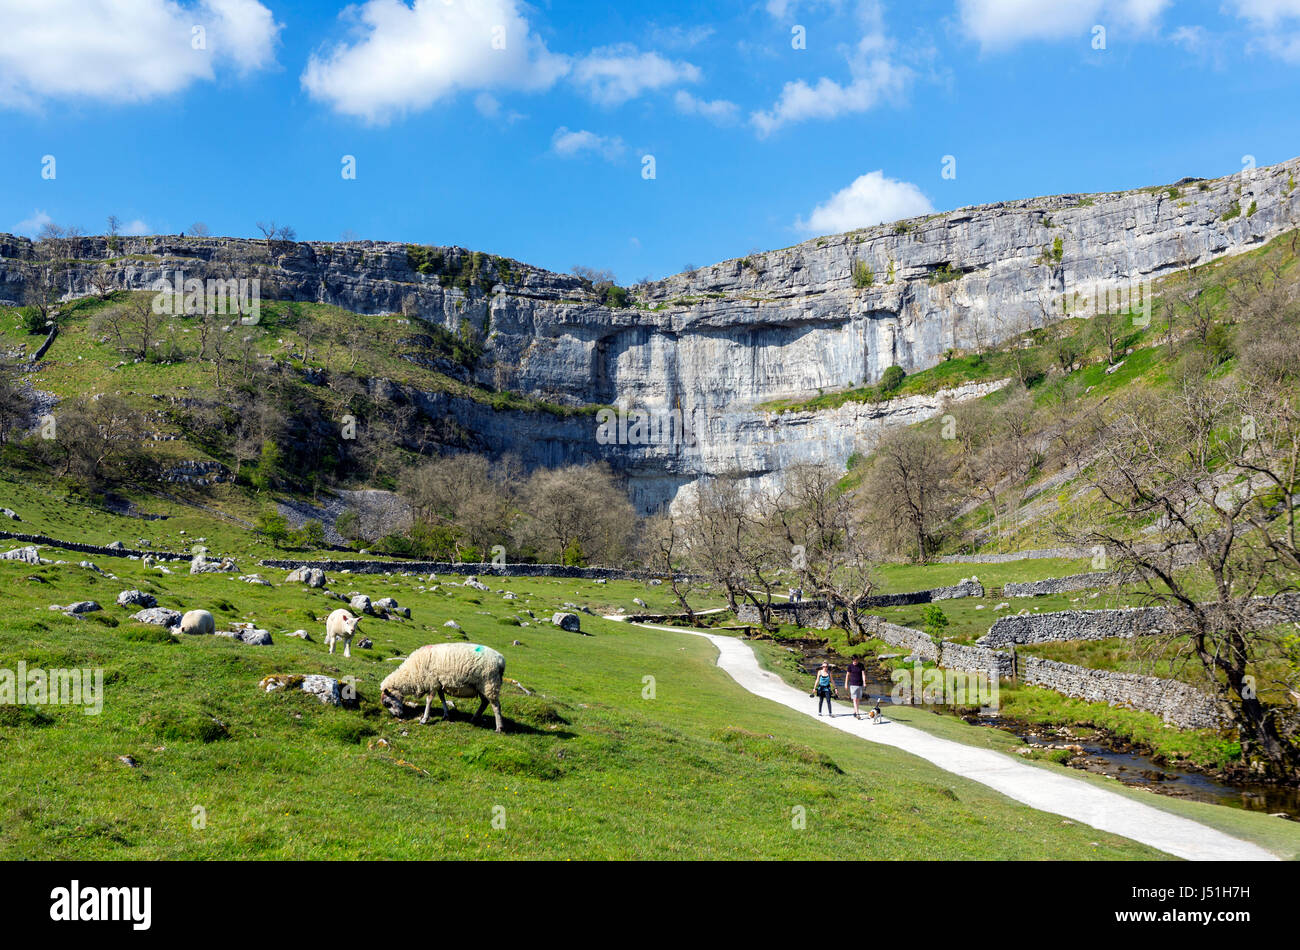 Sheep by the footpath to Malham Cove, Malham, Malhamdale, Yorkshire Dales National Park, North Yorkshire, England, - Stock Image